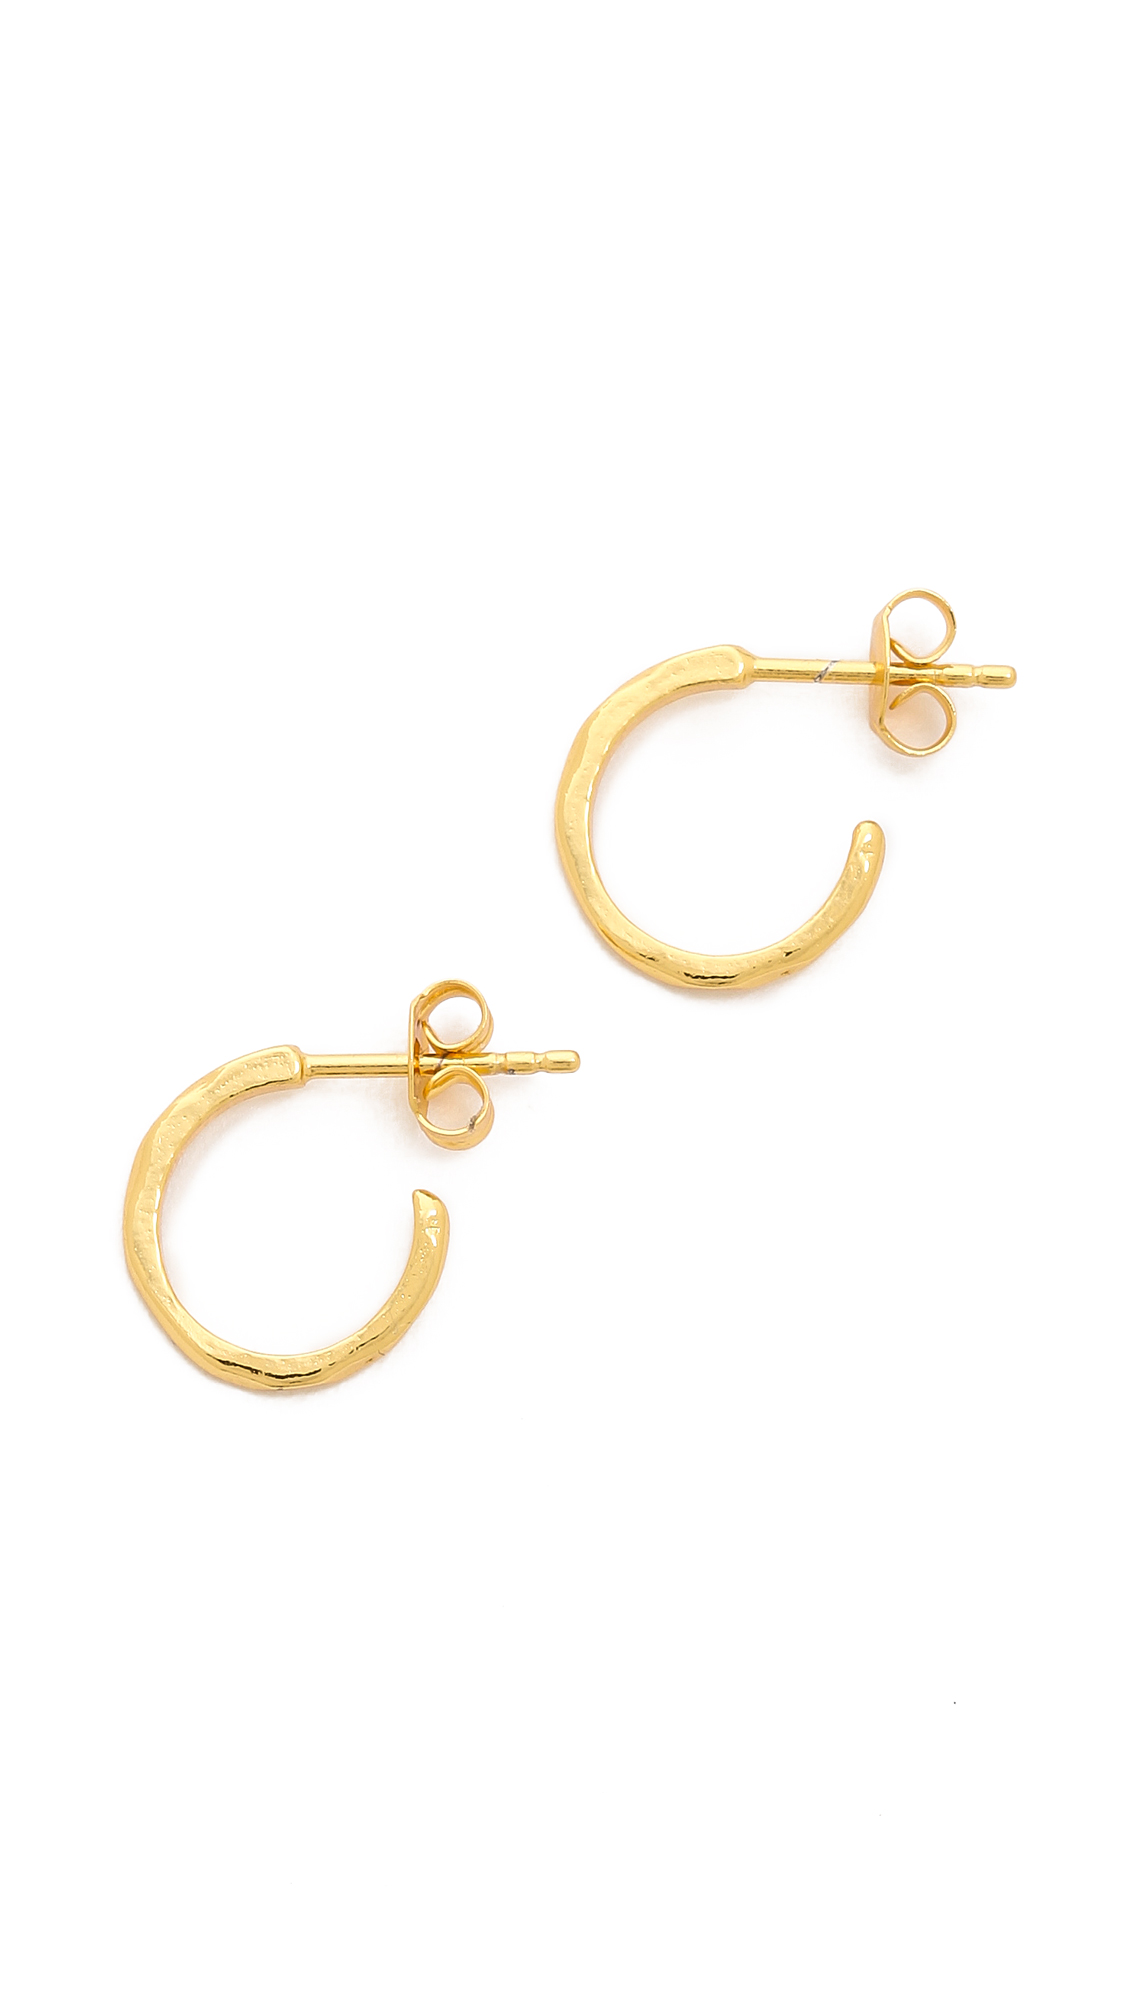 Gorjana taner bar mini hoop earrings